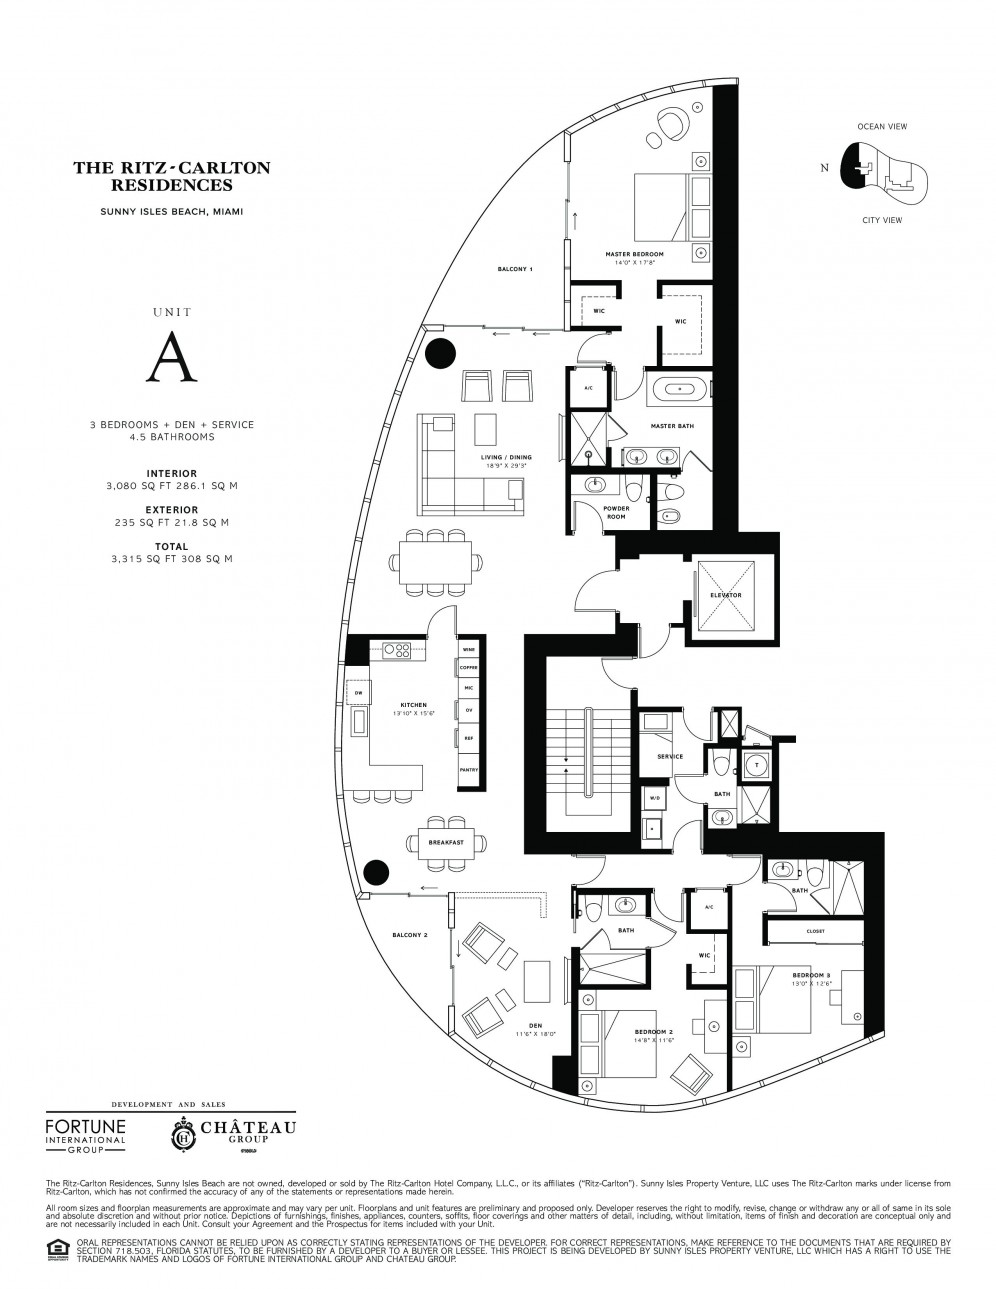 Residence 2801 Model A, Line 01 at The Ritz-Carlton